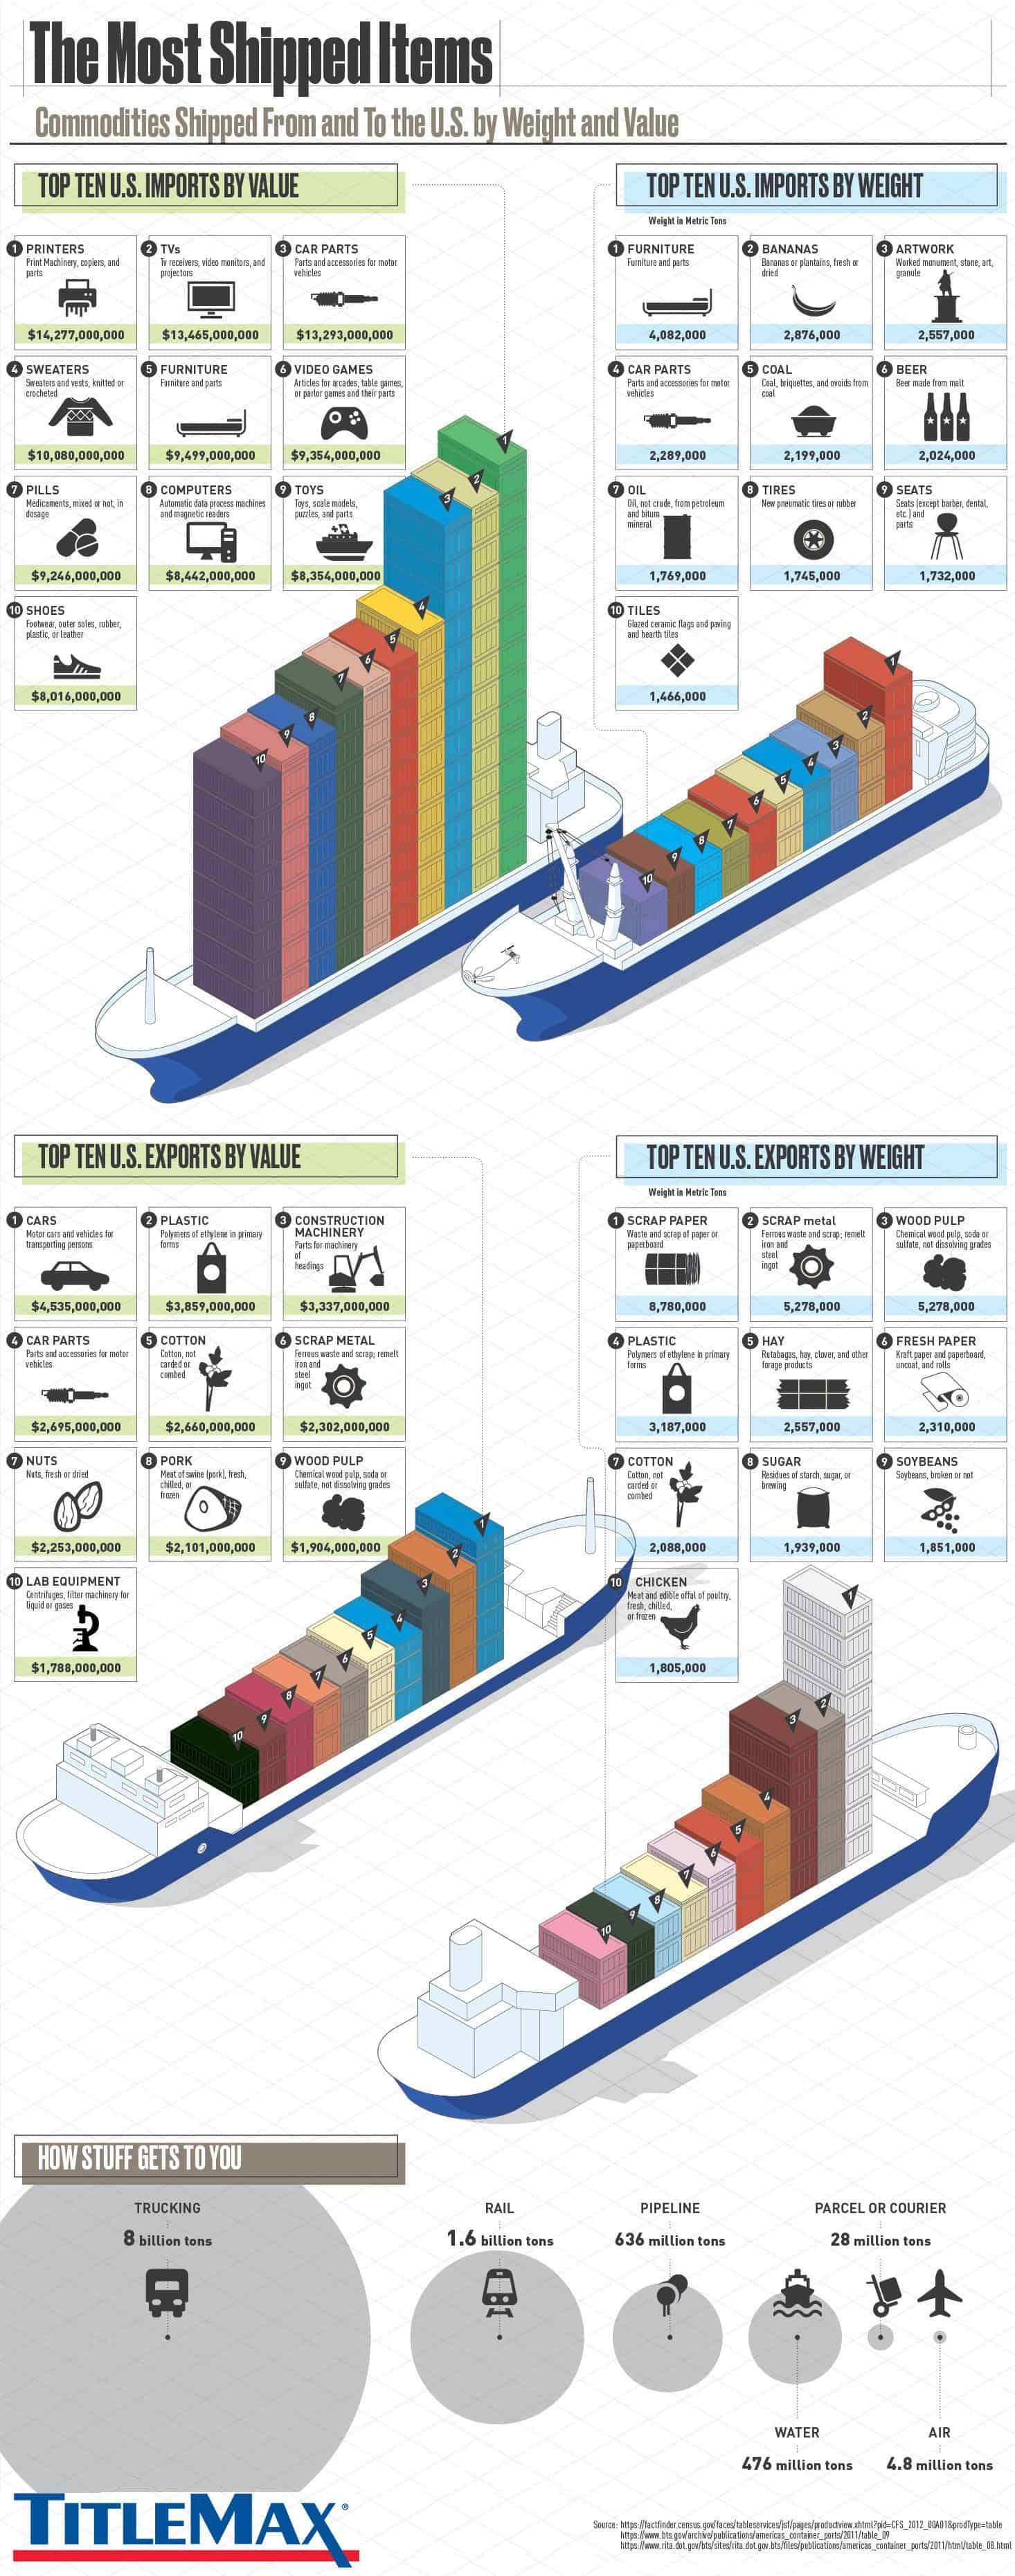 The Most Shipped Items by Weight and Value USA